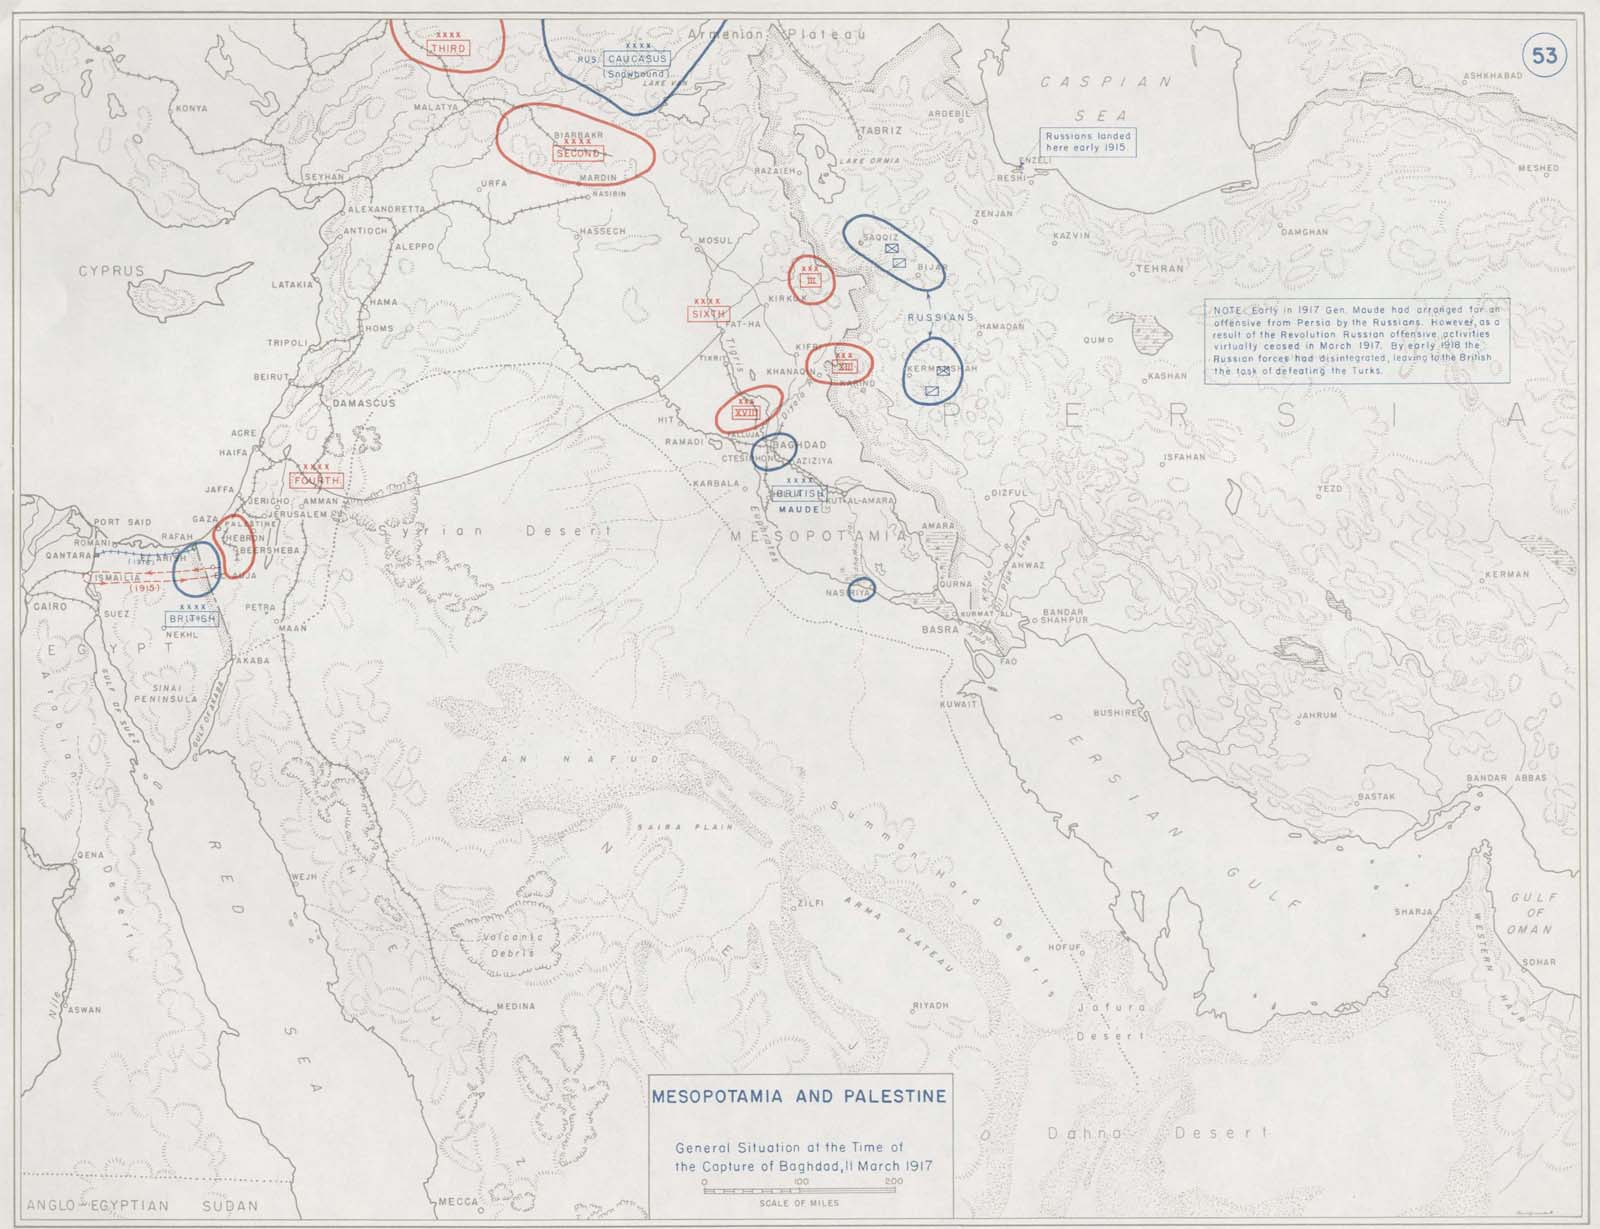 click here to view a map charting operations at the time of the fall of baghdad